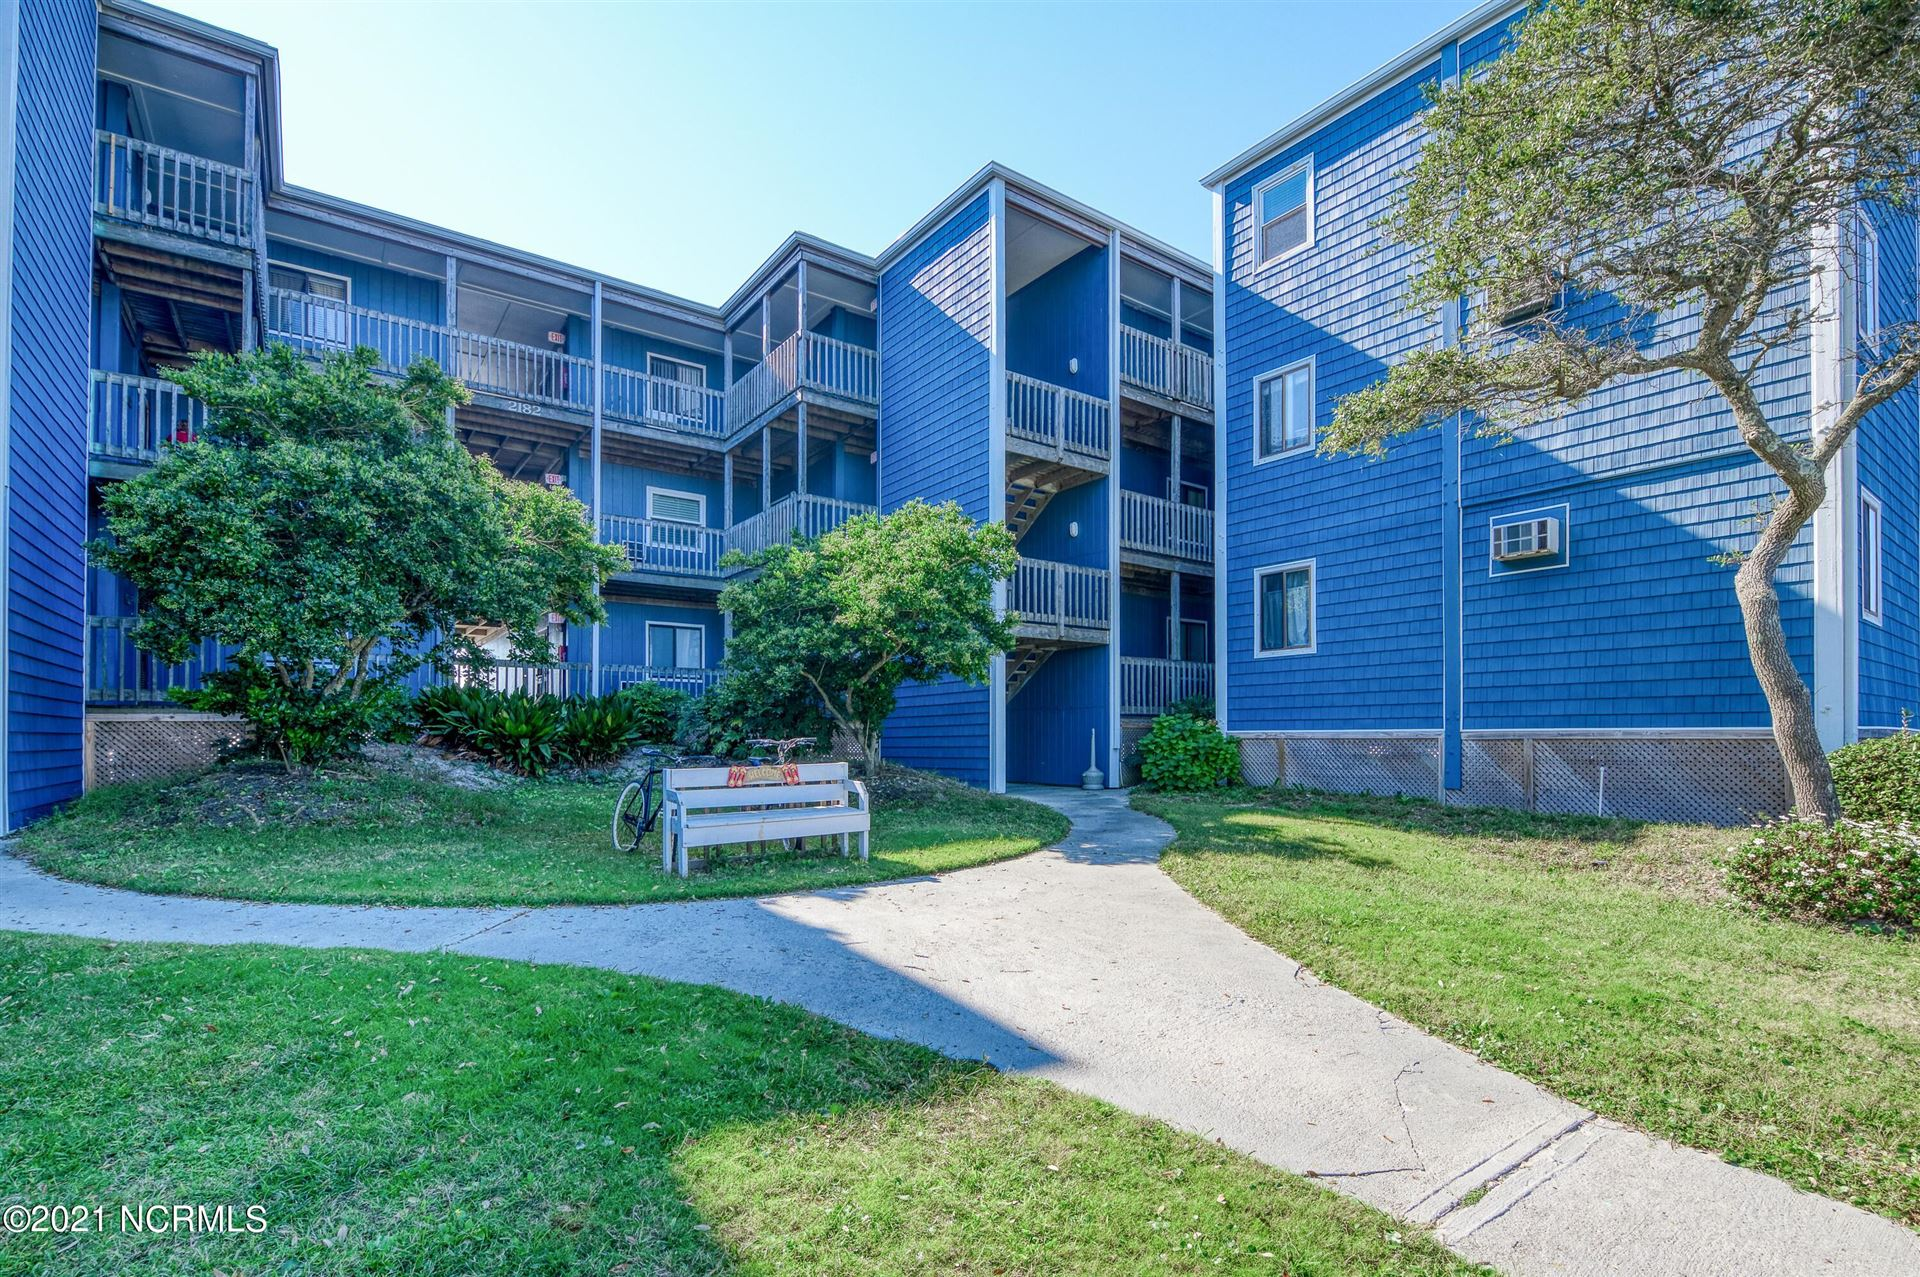 Photo of 2182 New River Inlet Road #274, North Topsail Beach, NC 28460 (MLS # 100295383)